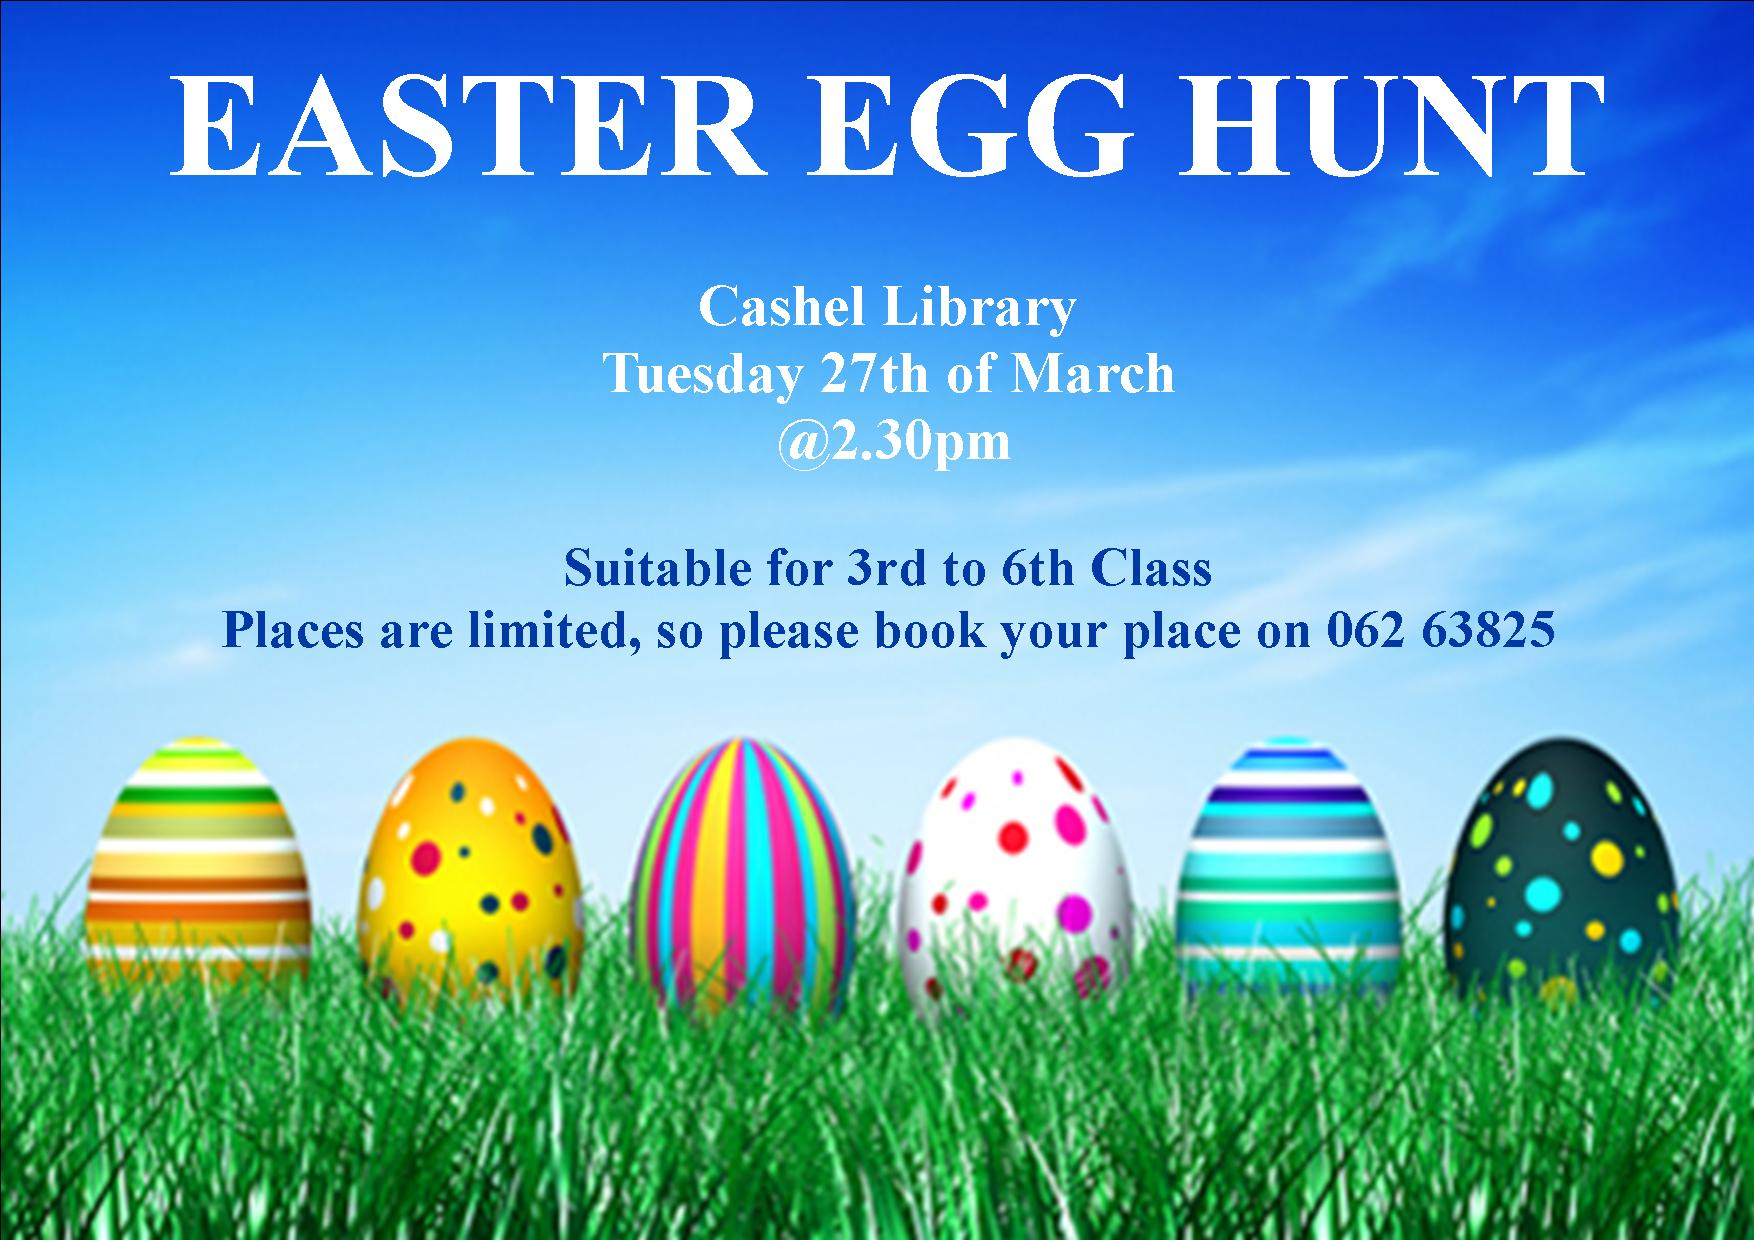 Easter Egg Hunt in Cashel Library